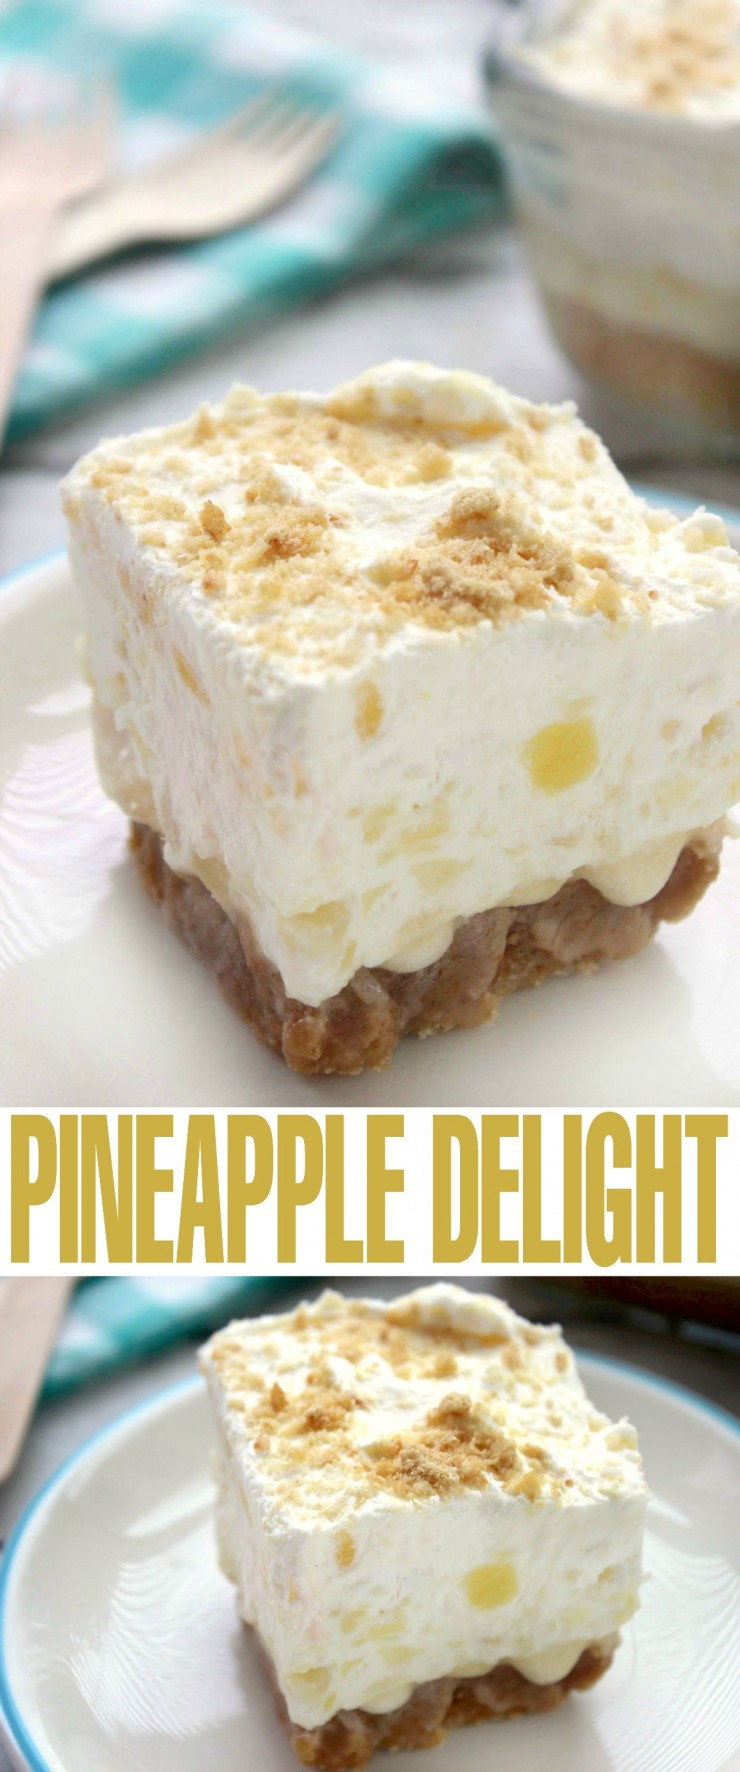 Pineapple Delight is a luscious summer dessert perfect for serving guests!